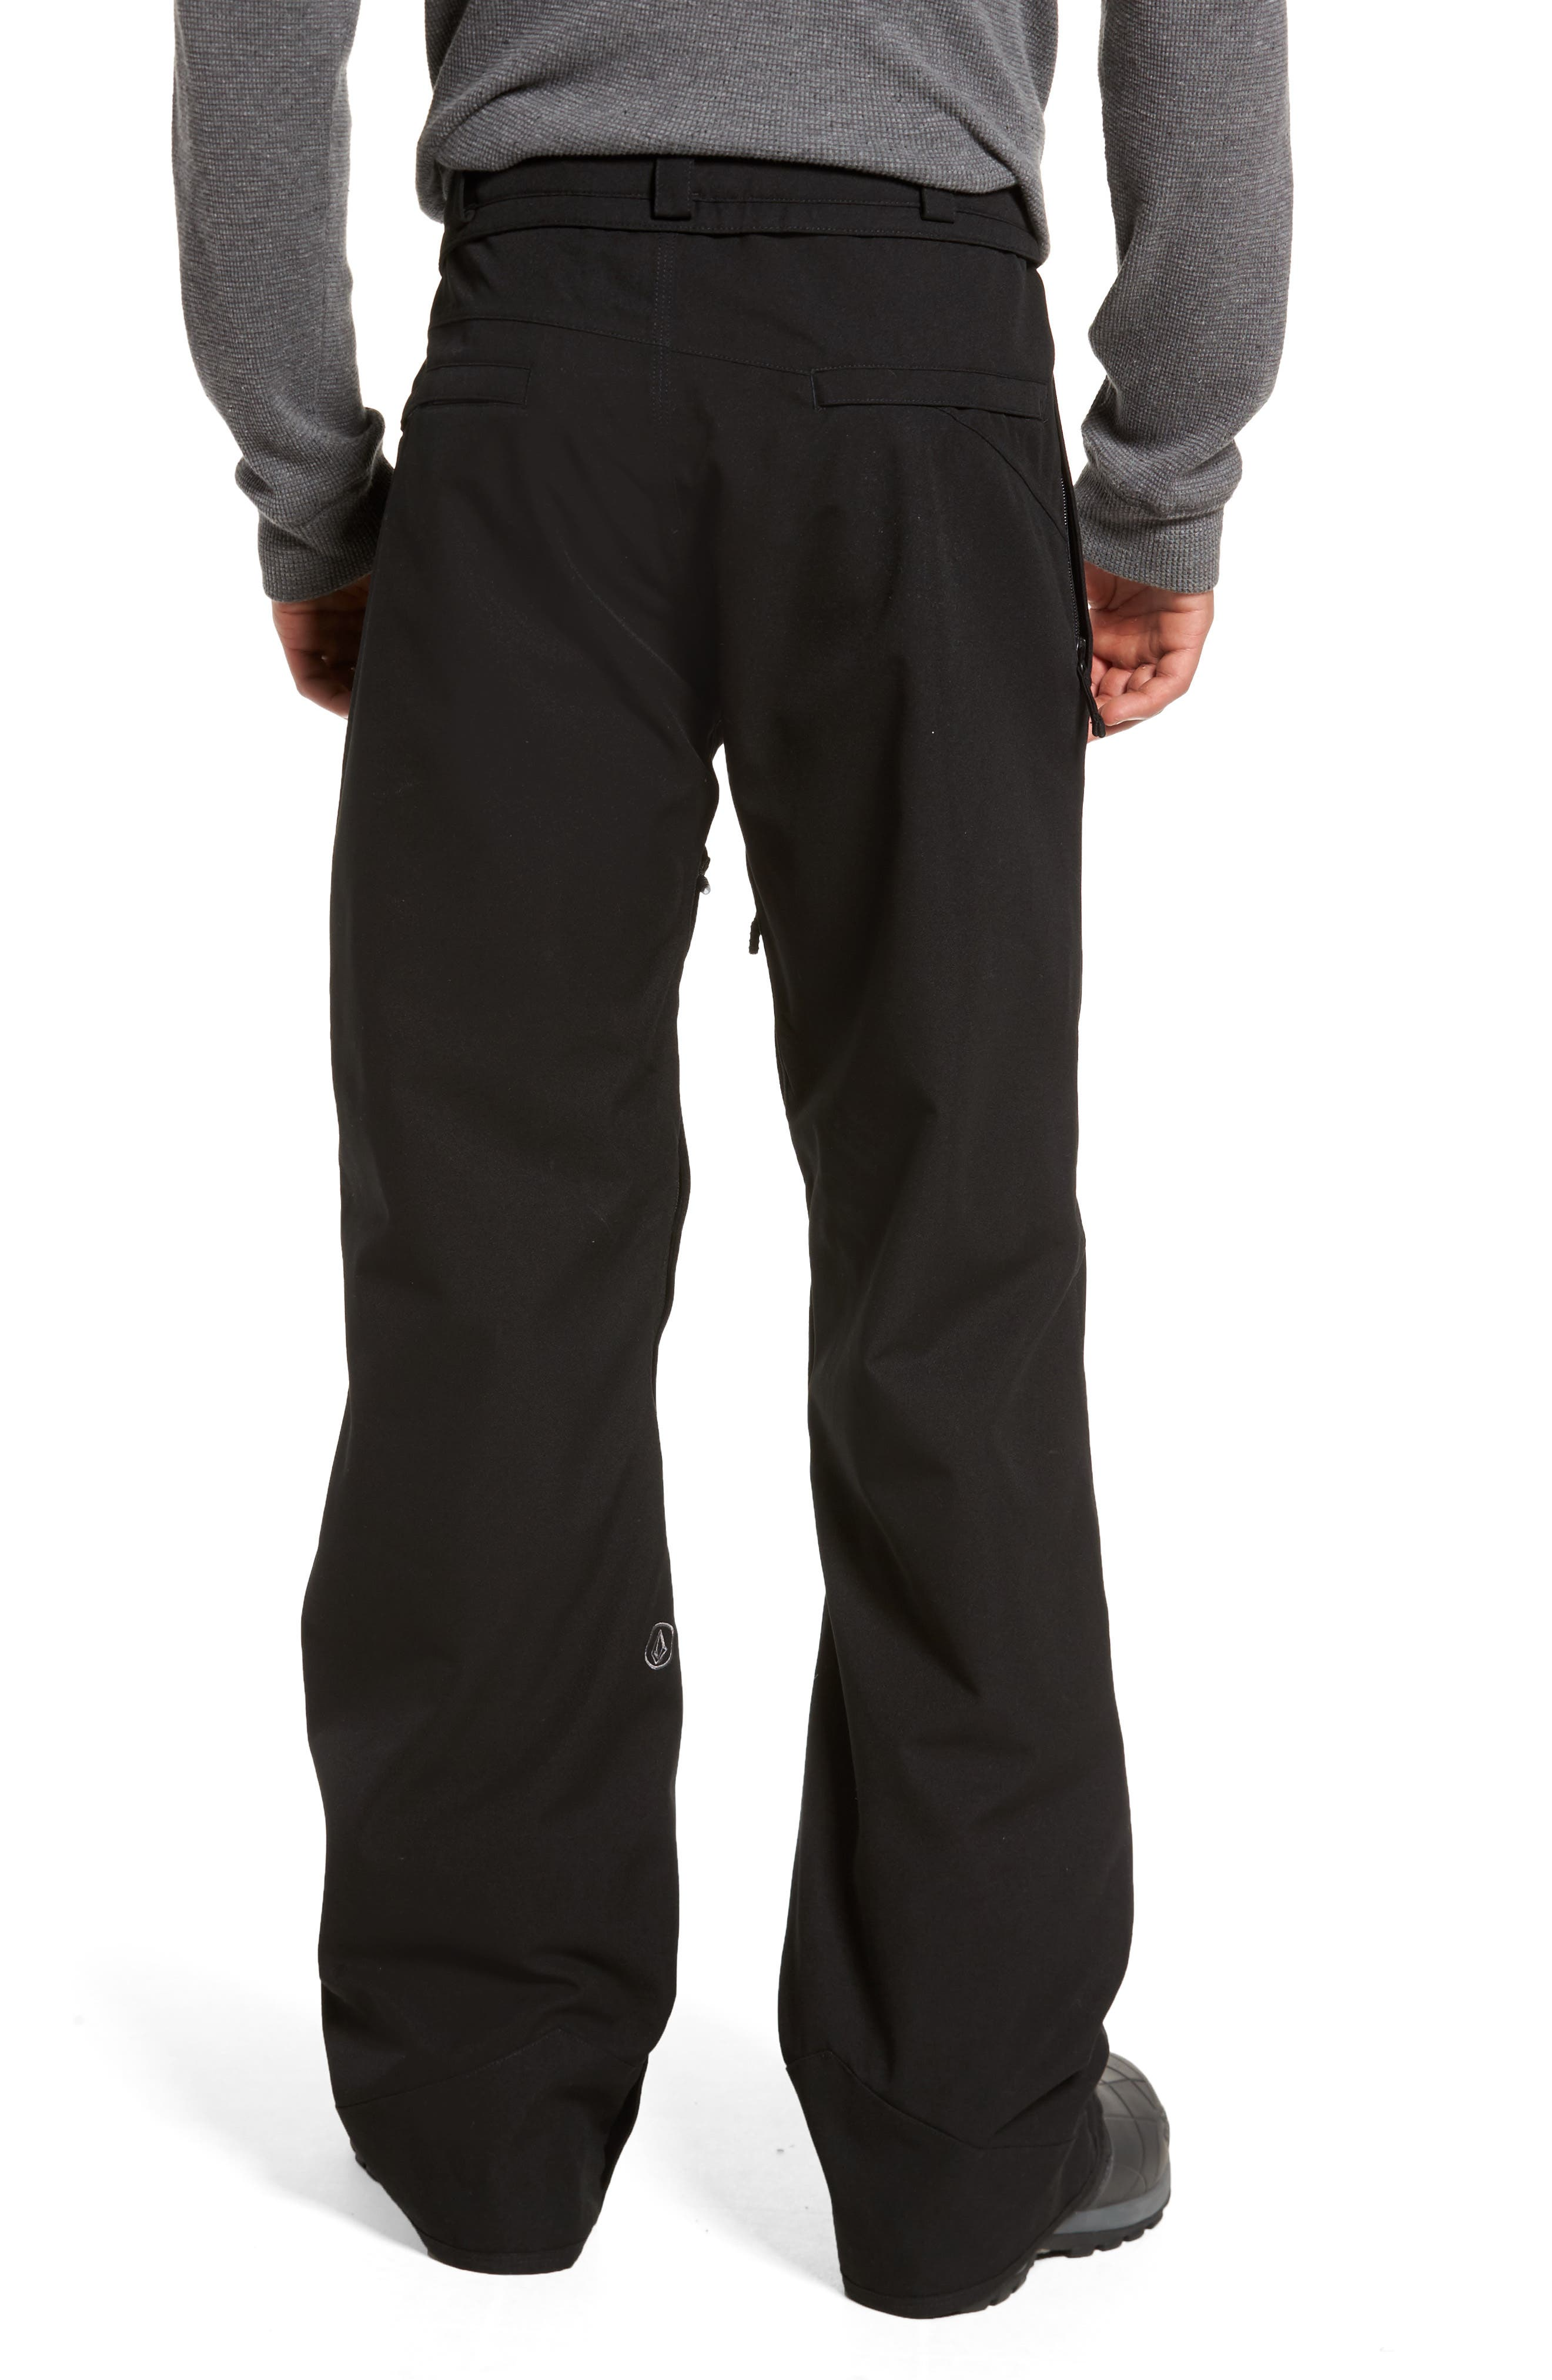 Weatherproof Snow Chino Pants,                             Alternate thumbnail 2, color,                             001